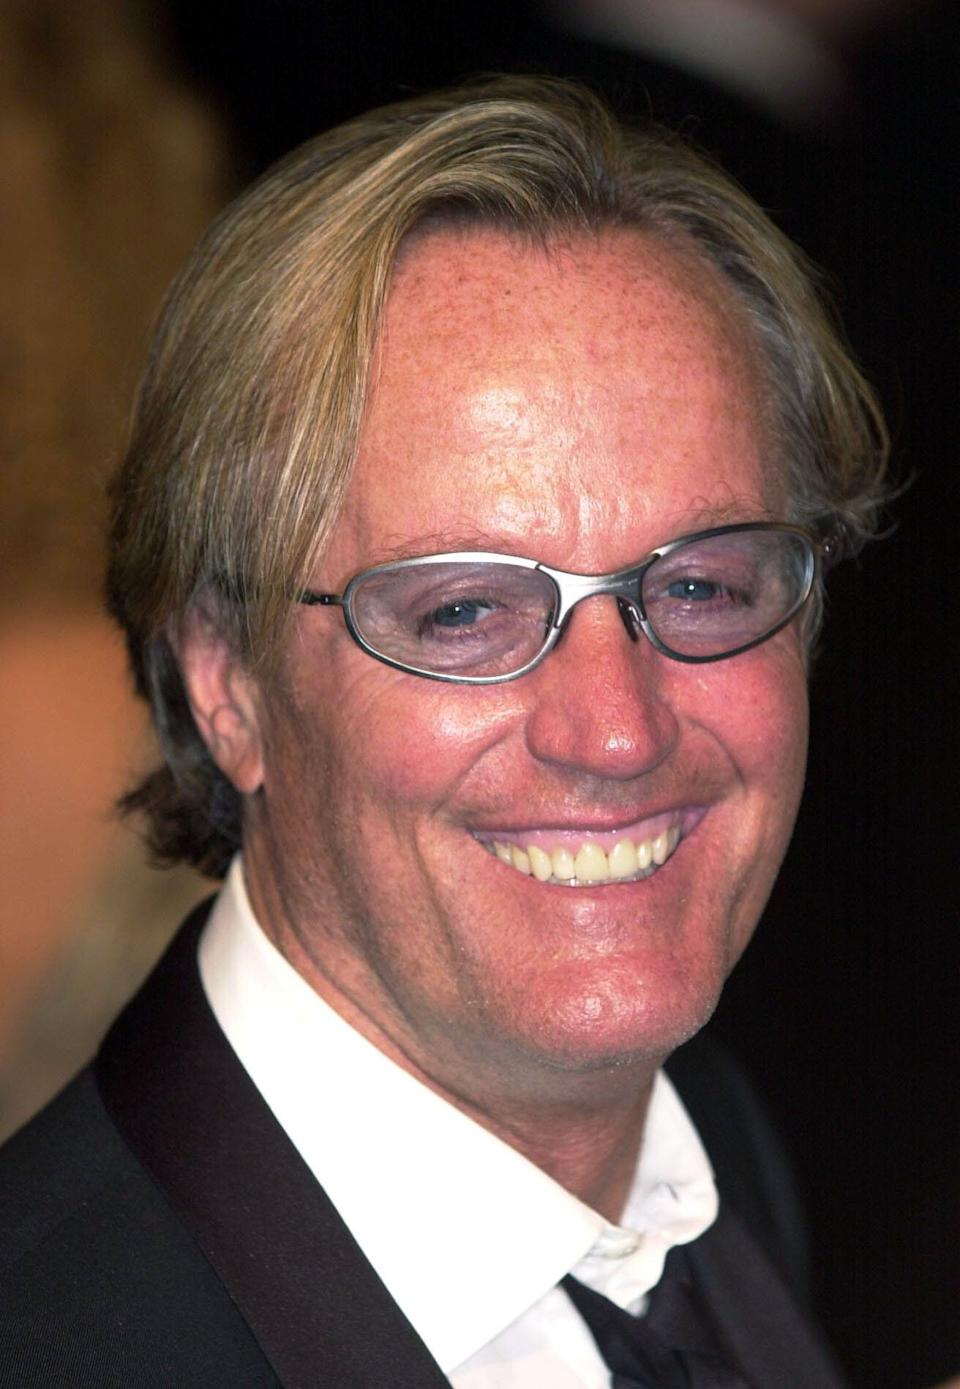 <strong>Peter Fonda (1940-2019)</strong><br />Peter was best known for his role in Easy Rider, and was the brother of Hollywood star Jane Fonda. He died after being diagnosed with lung cancer.